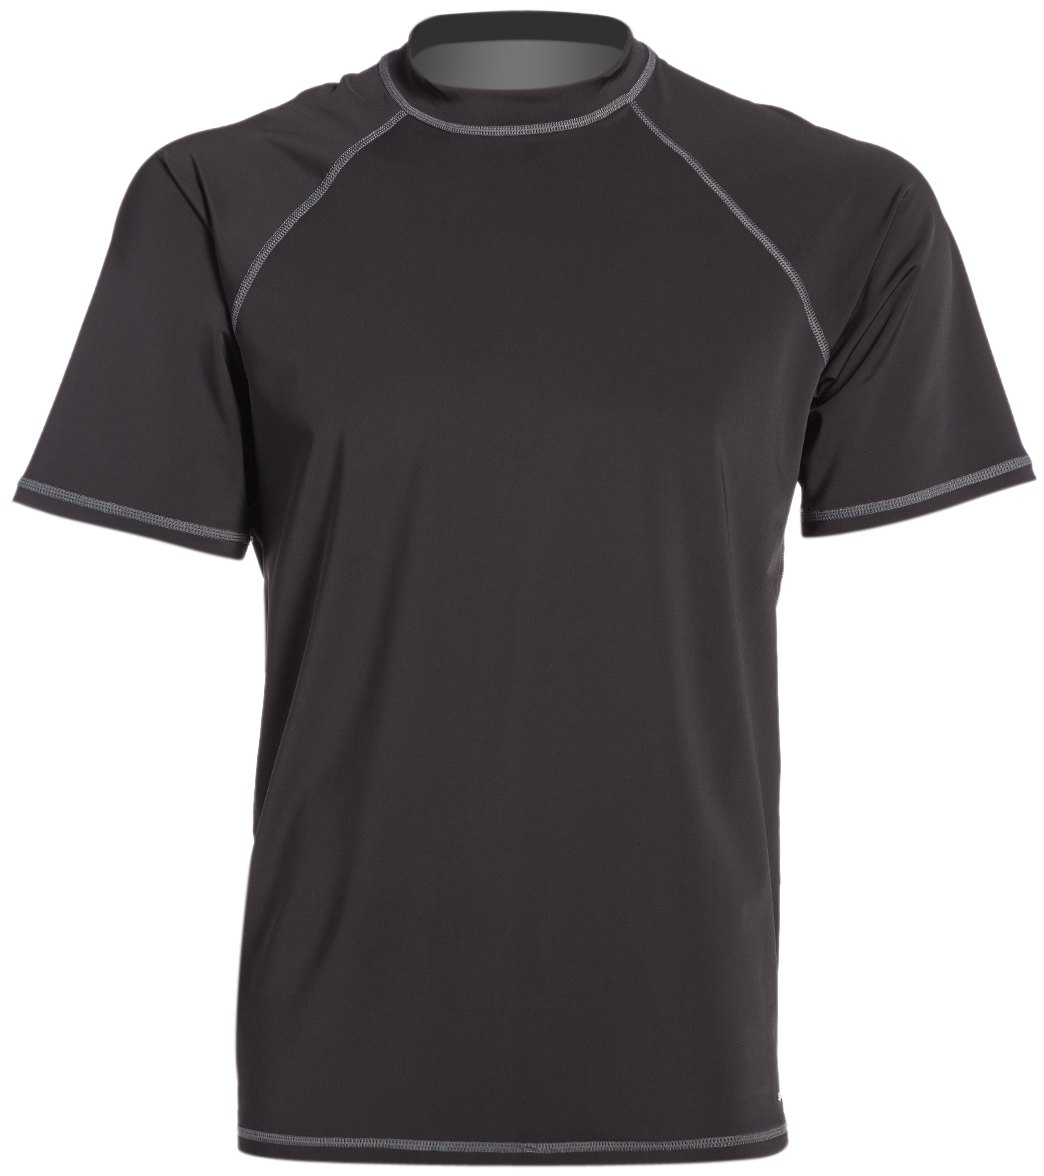 Cheap Sale Recommend TOP SHORT SLEEVES MESH - TOPWEAR - T-shirts Nike New Styles Sale Online Sale Best Store To Get Cheap Price Wholesale Shopping Online With Mastercard UBlndI